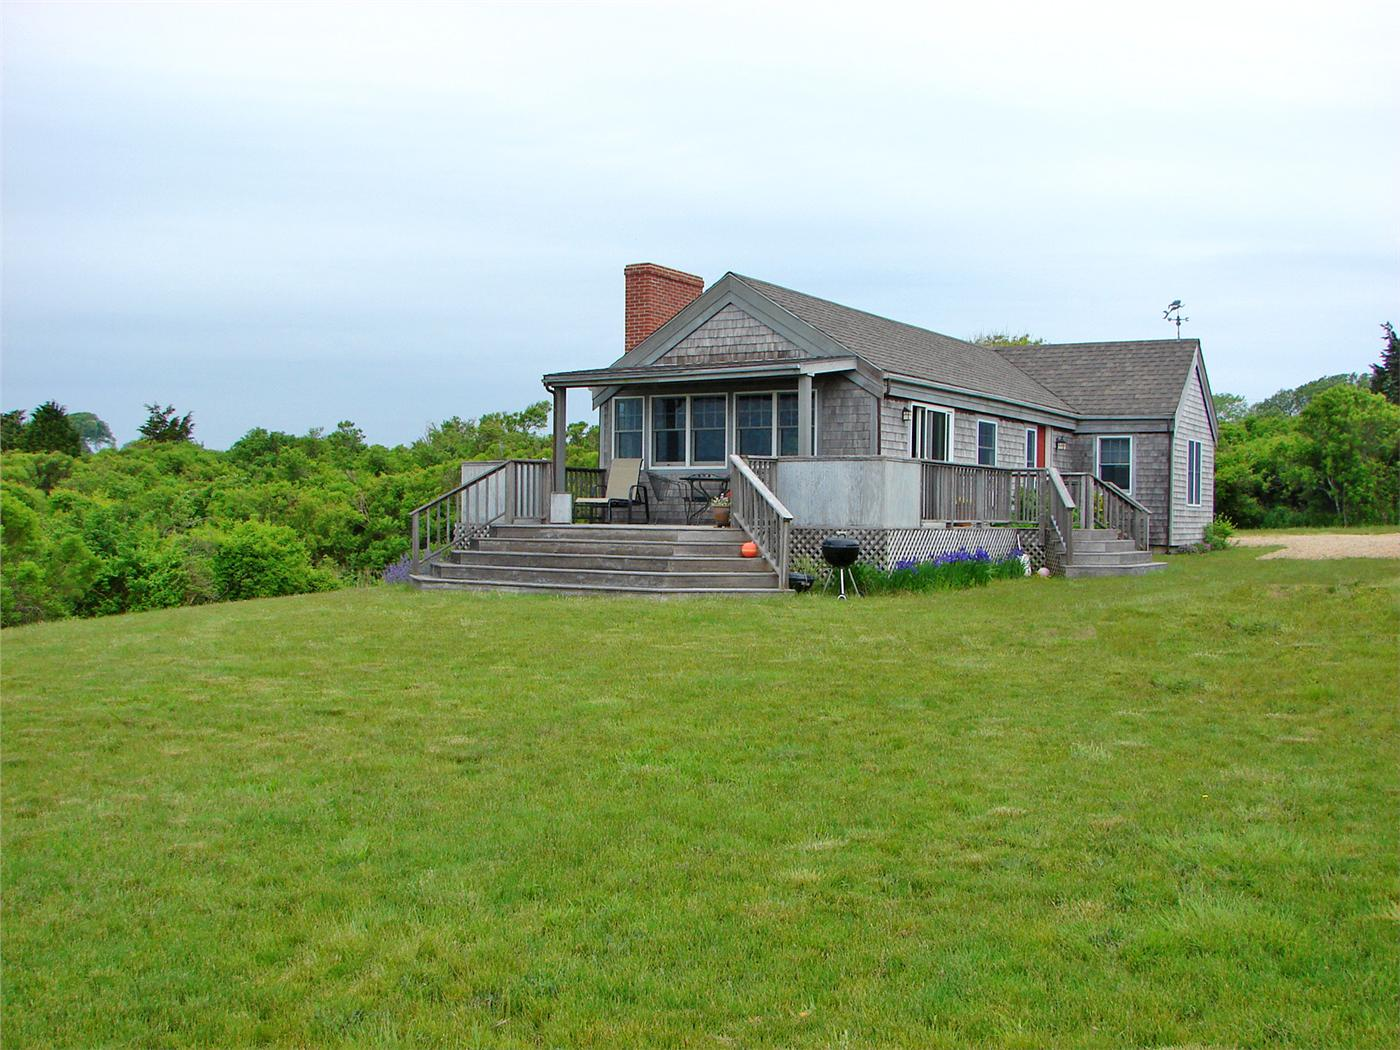 Chilmark Vacation Rental home in Marthas Vineyard MA